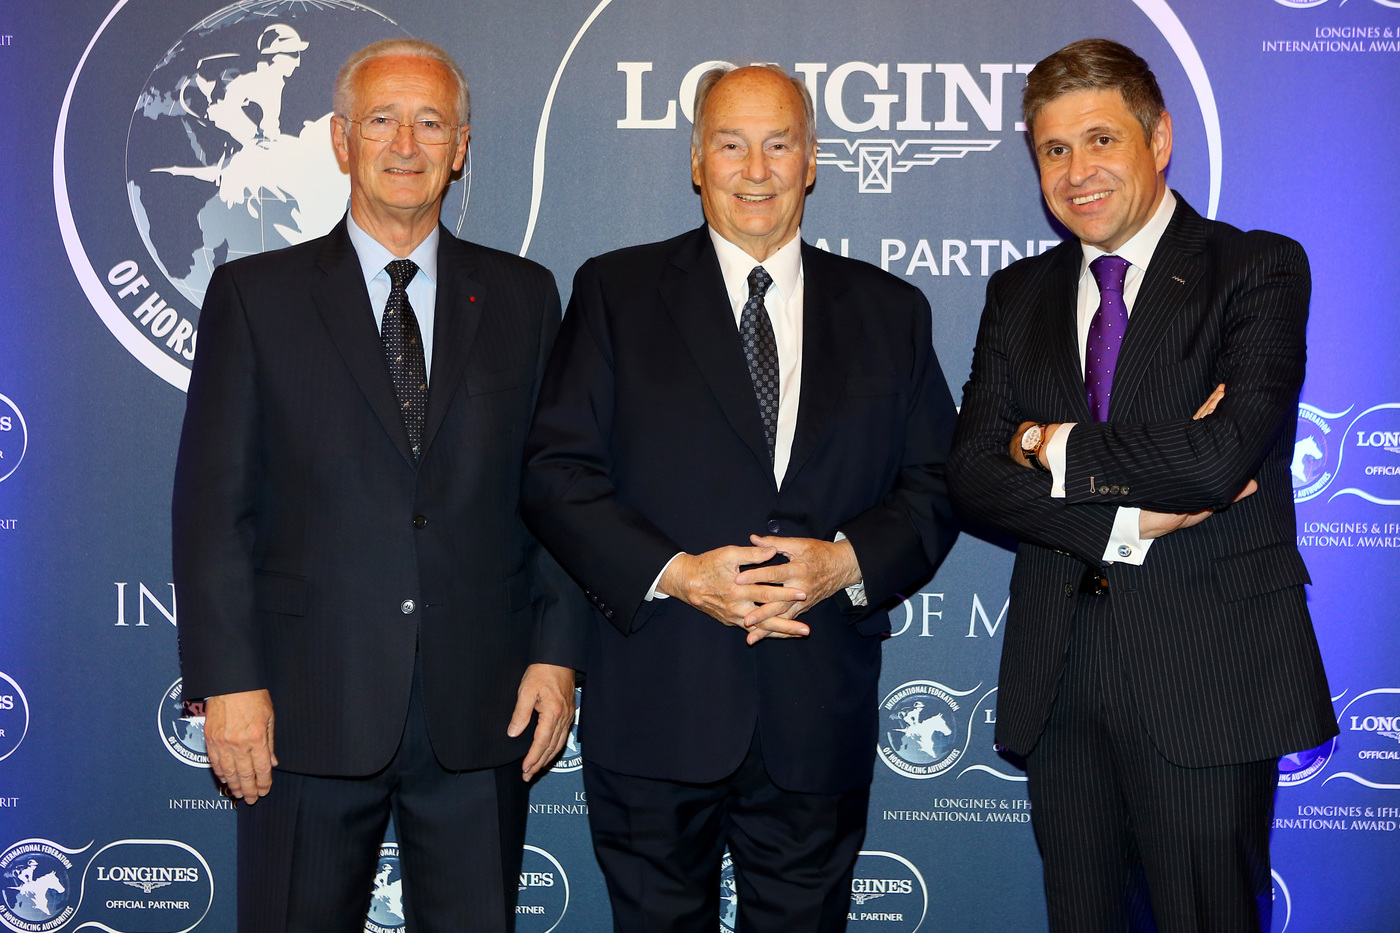 Longines Corporate Event: 2016 Longines and International Federation of Horseracing Authorities (IFHA) International Award of Merit goes to the Romanet Family, long renowned leaders in French and international world of horseracing 3